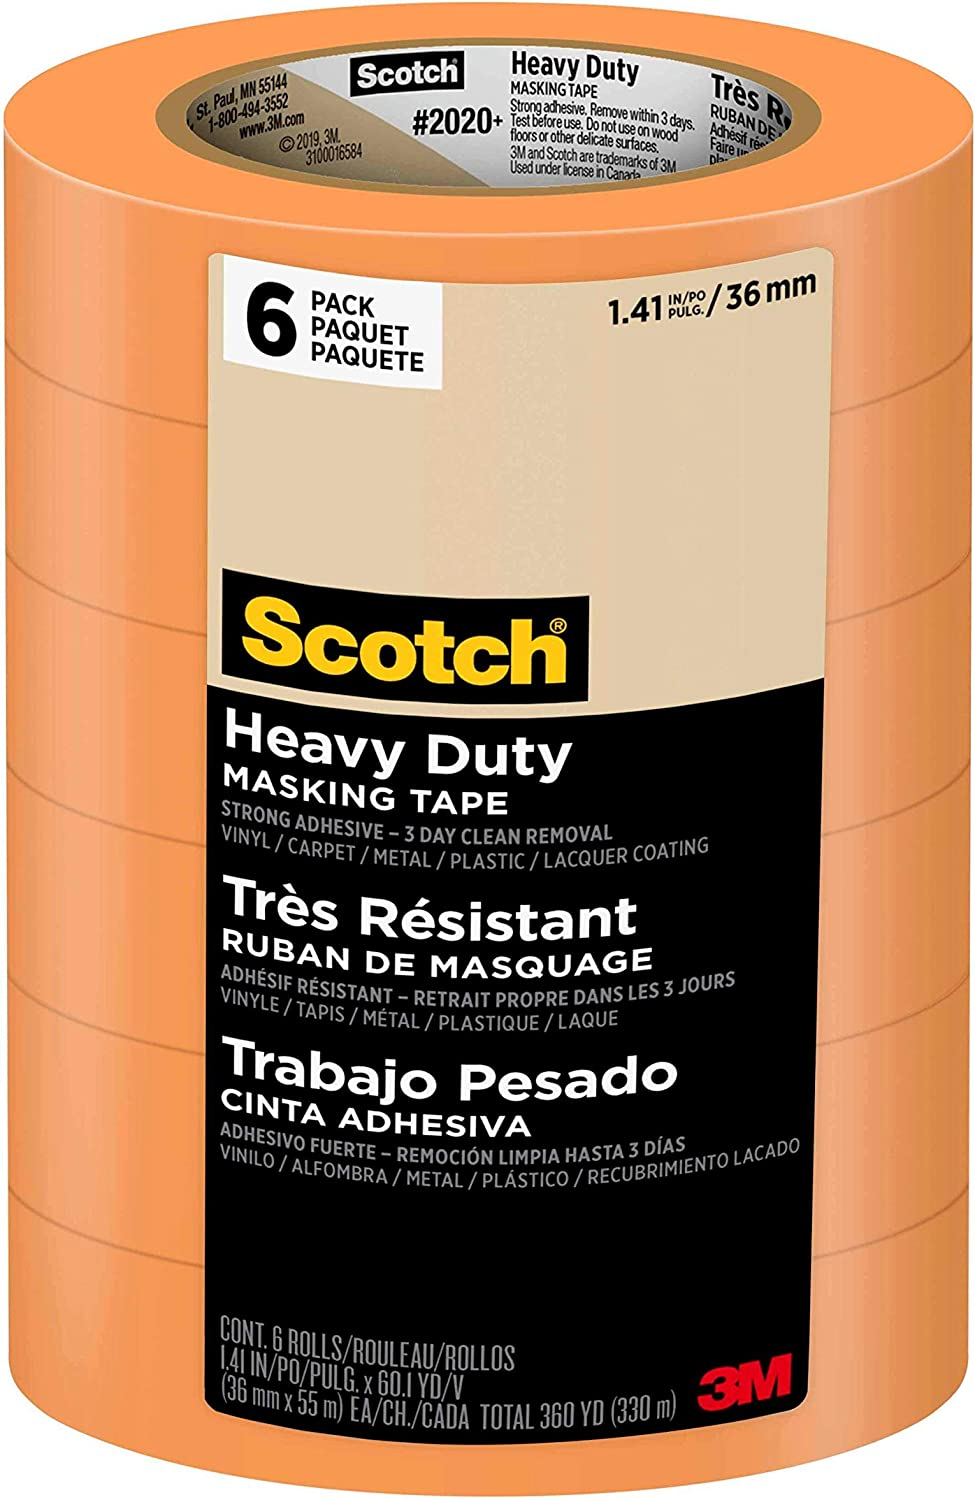 Scotch Heavy Duty Masking Tape, 1.88 inch by 60.1 yard, 6 Rolls